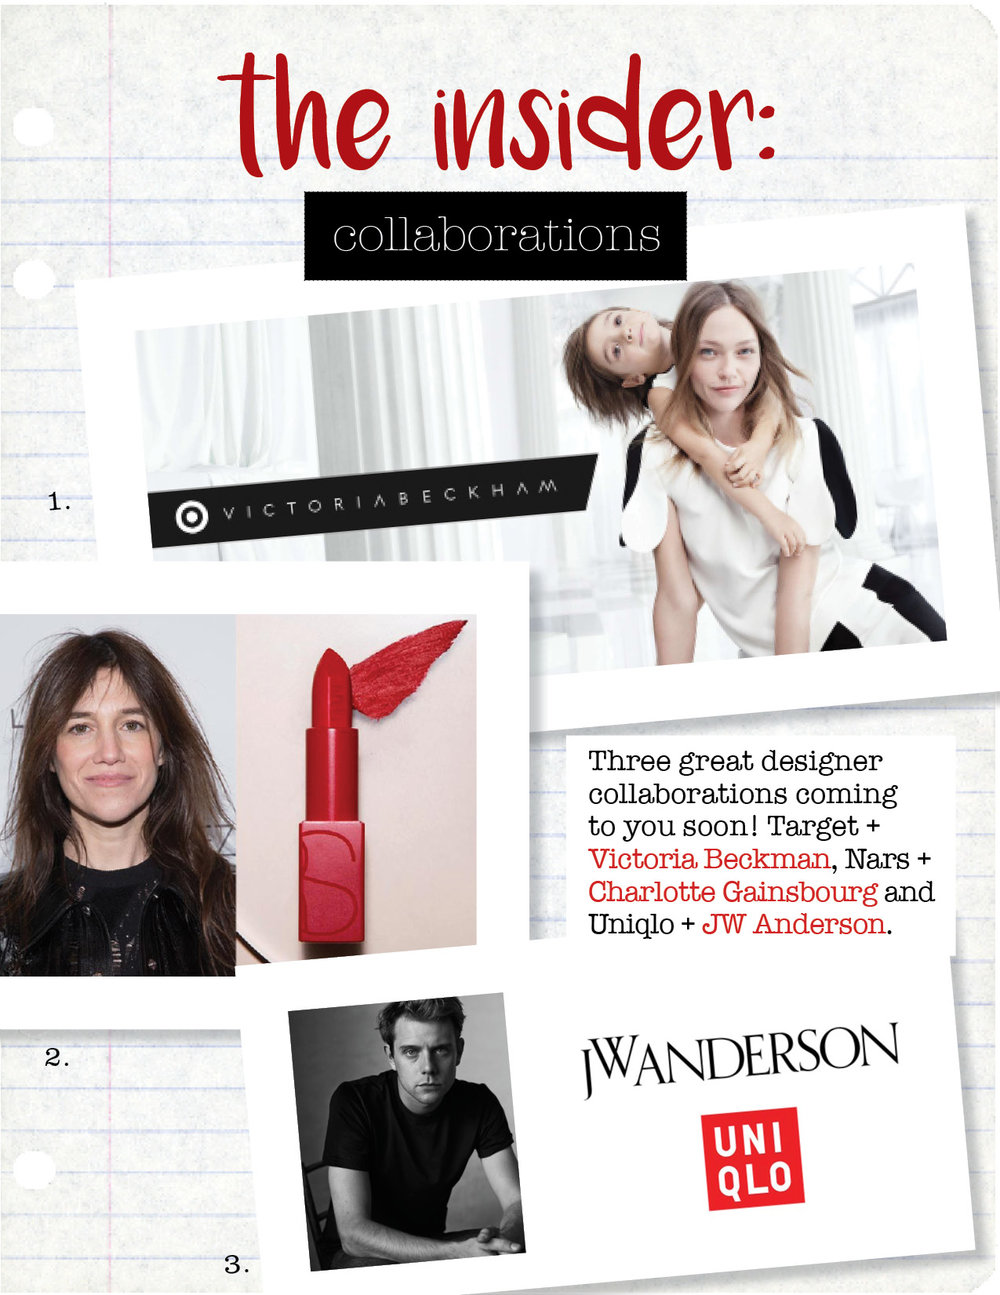 1. victoria beckham for target,  target.com  2. charlotte gainsbourg for nars,  narscosmetics.com  3. jw anderson for uniqlo,  businessoffashion.com